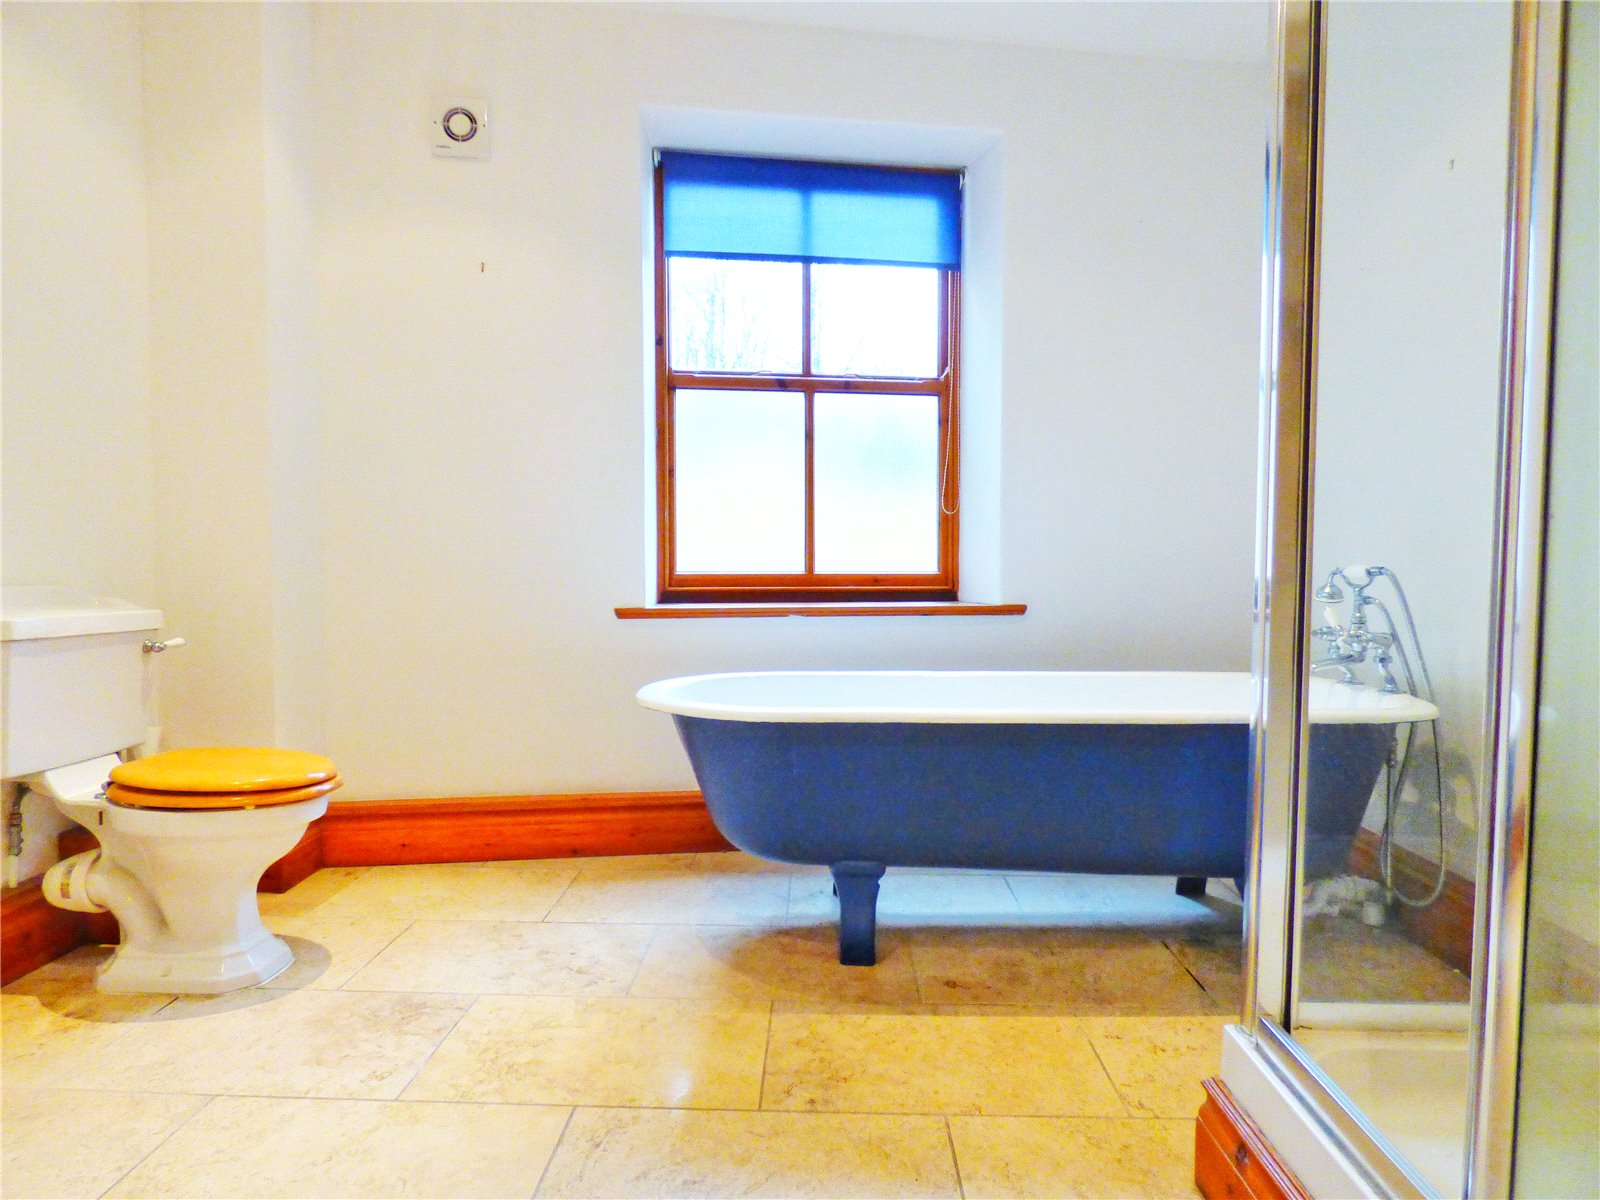 4-Piece Bathroom: